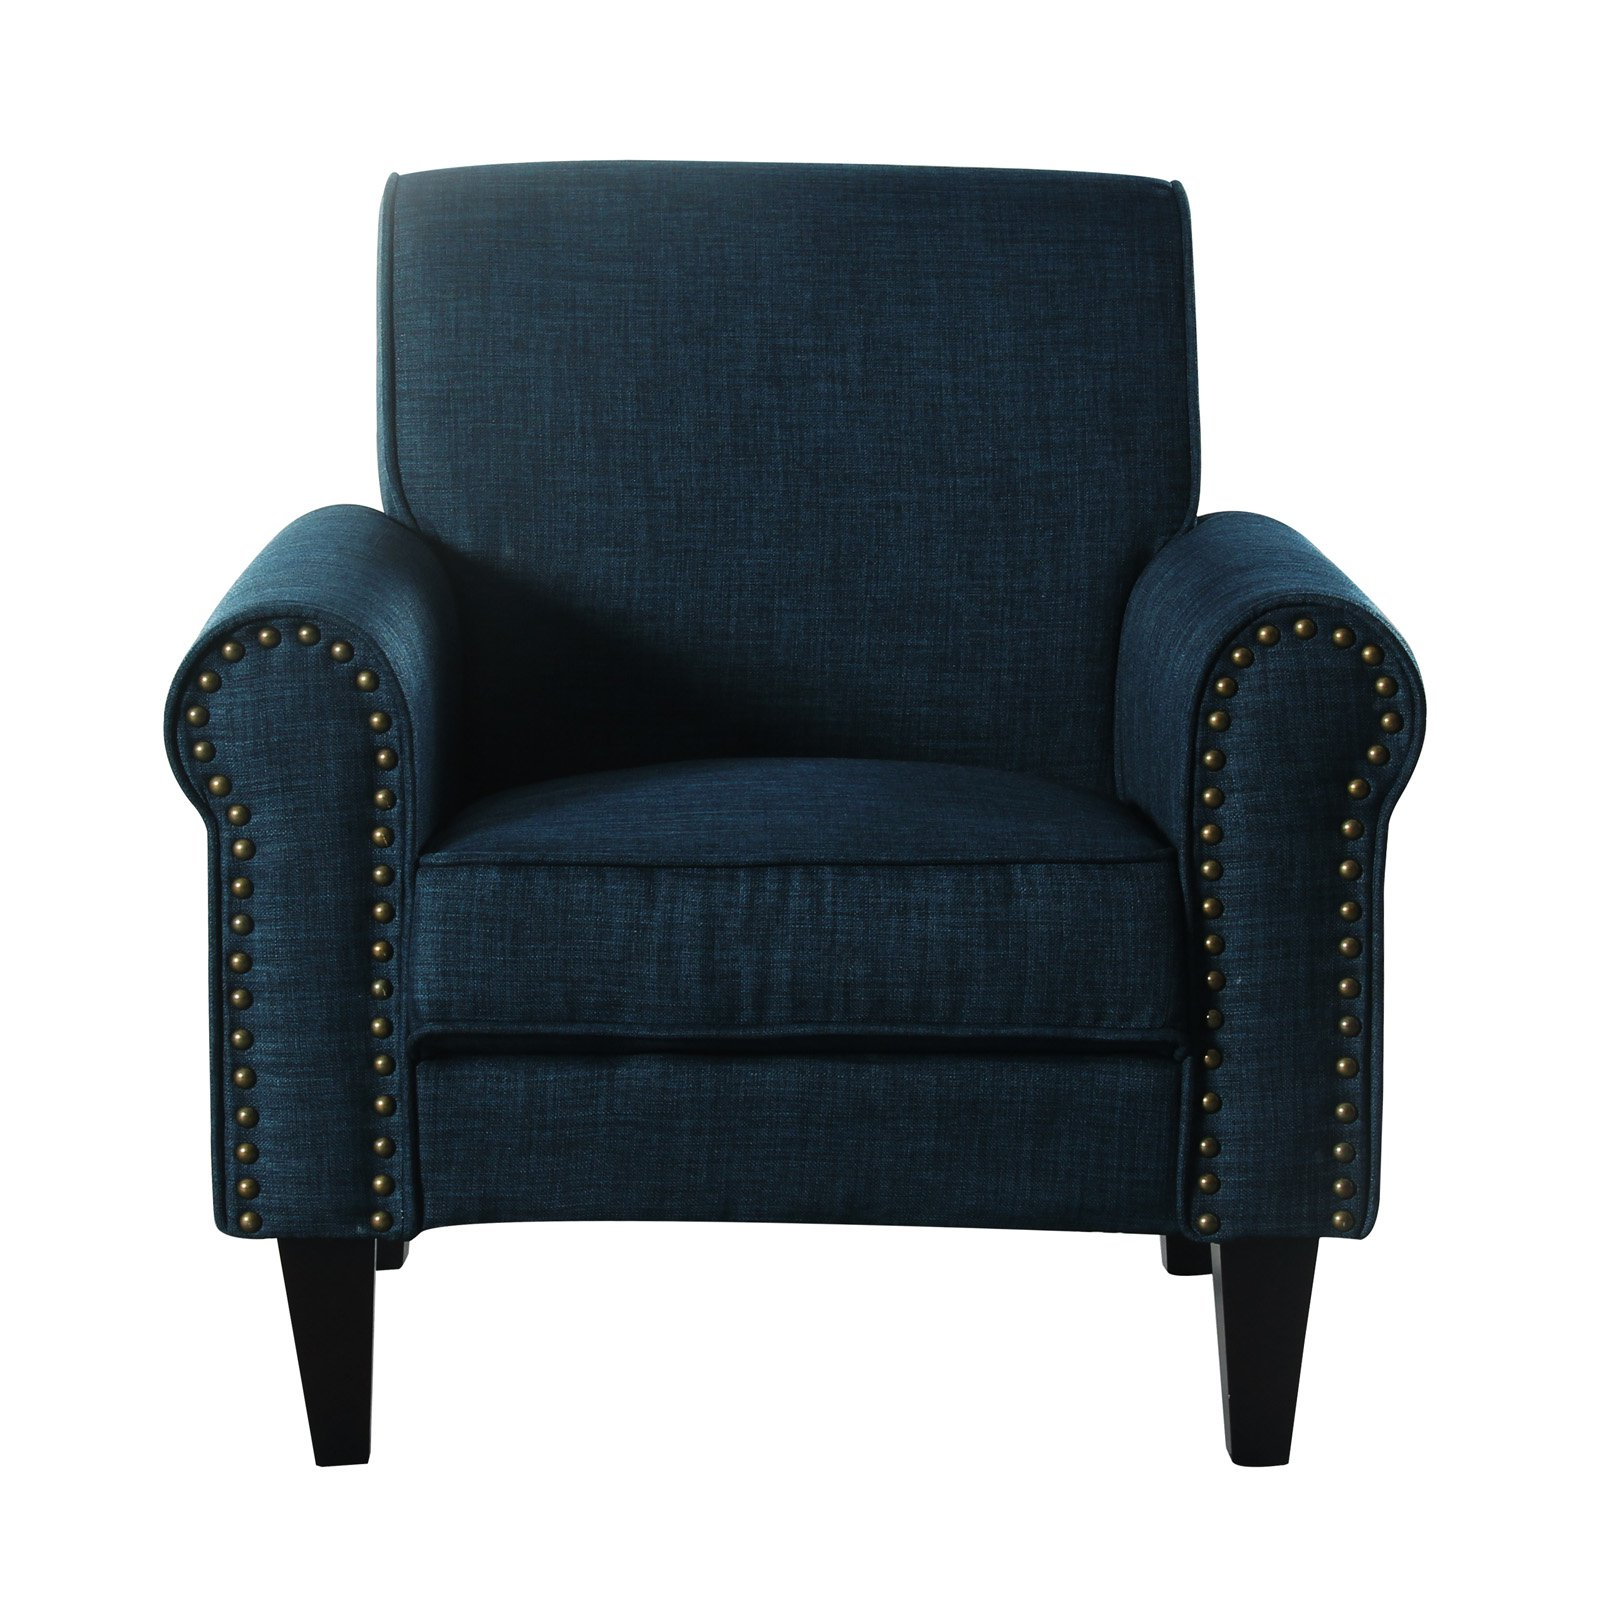 upholstered chair with nailhead trim high back covers for sale incadozo accent walmart com